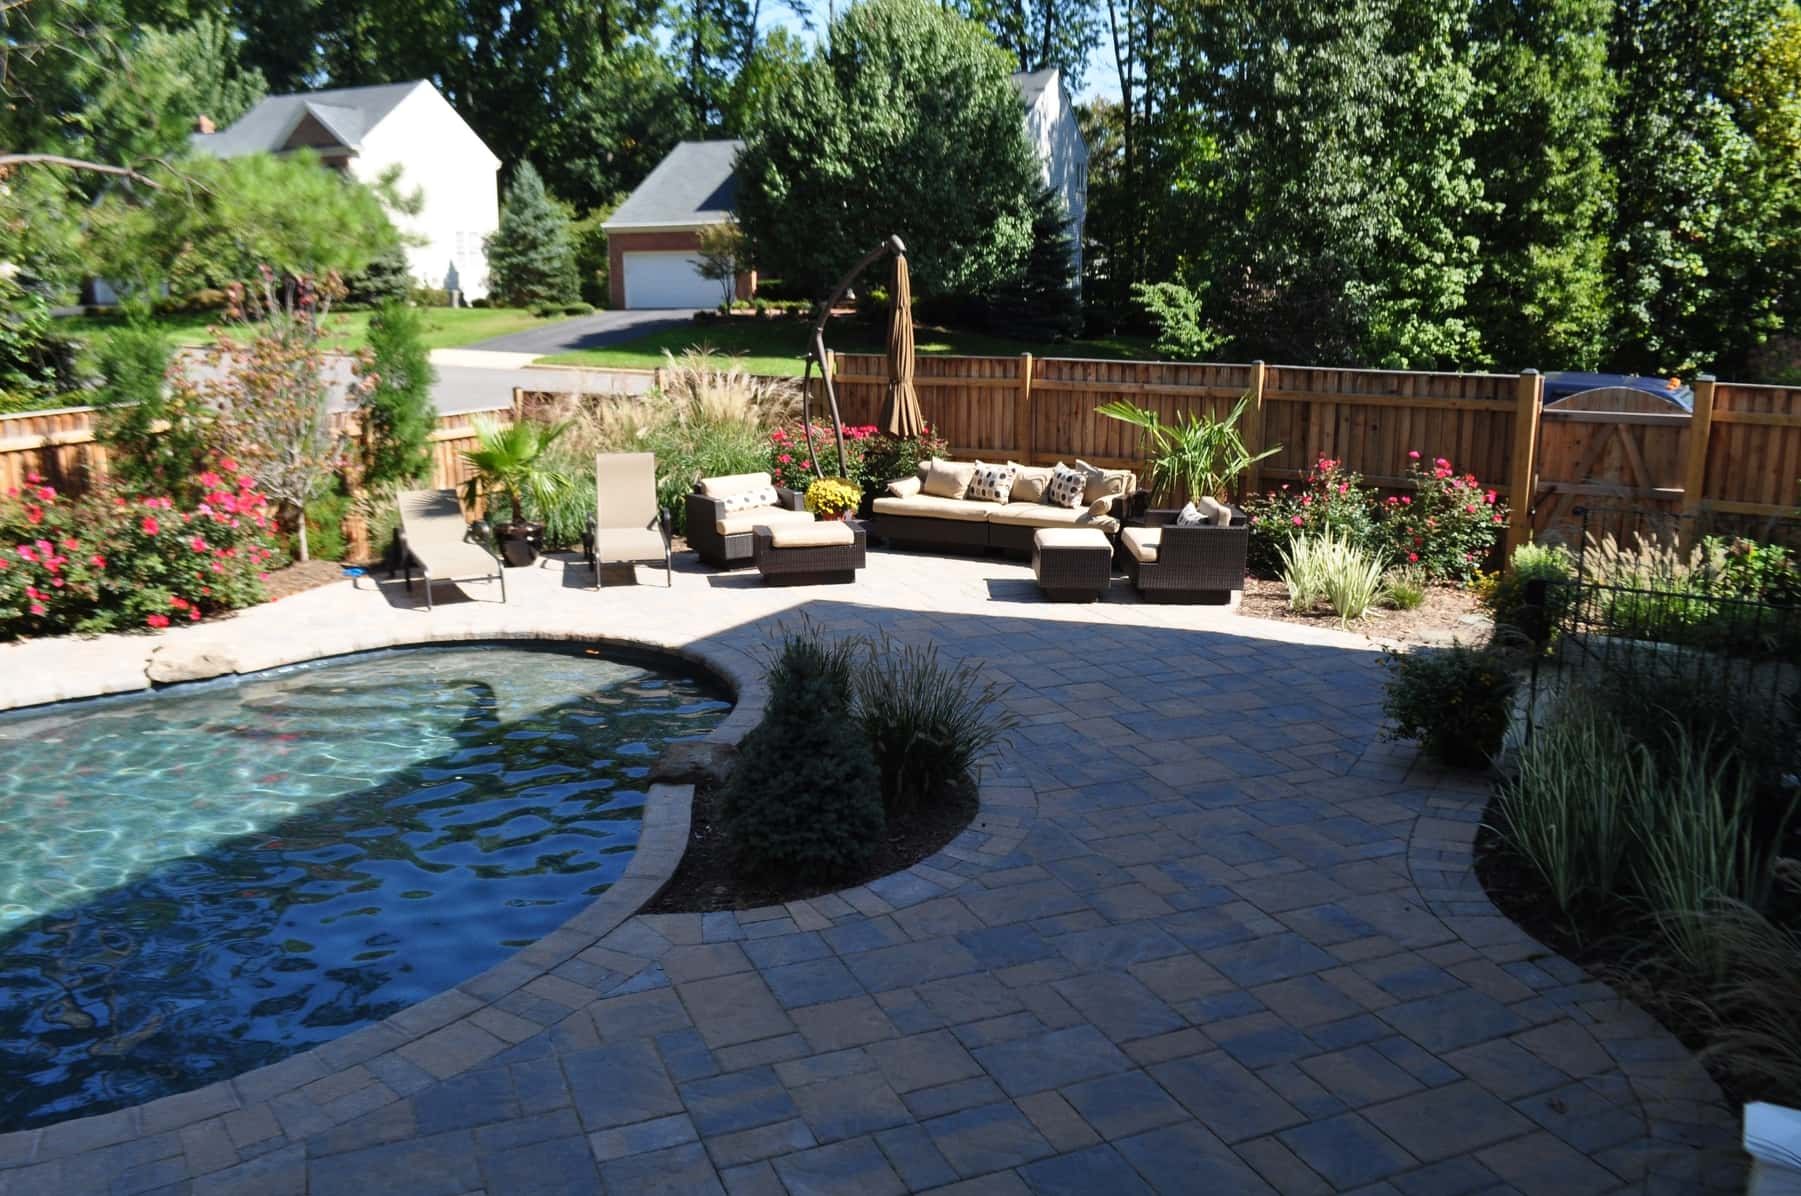 Paving Stone Patio and Pool Deck, Baltimore